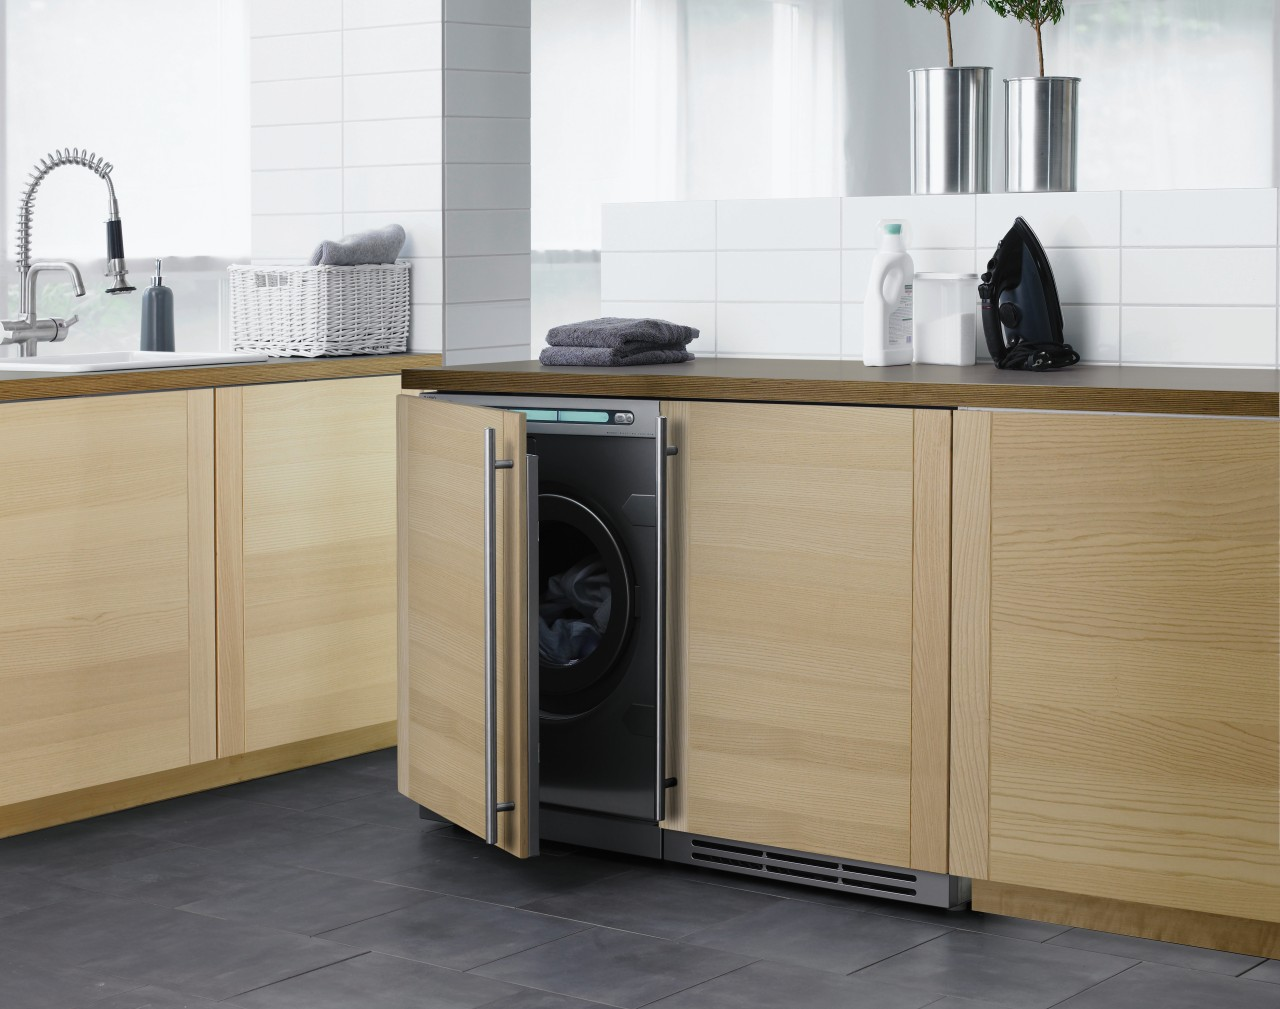 A view of this clean, contemporary laundry featuring cabinetry, clothes dryer, countertop, floor, furniture, home appliance, kitchen, kitchen appliance, kitchen stove, major appliance, product, product design, refrigerator, washing machine, white